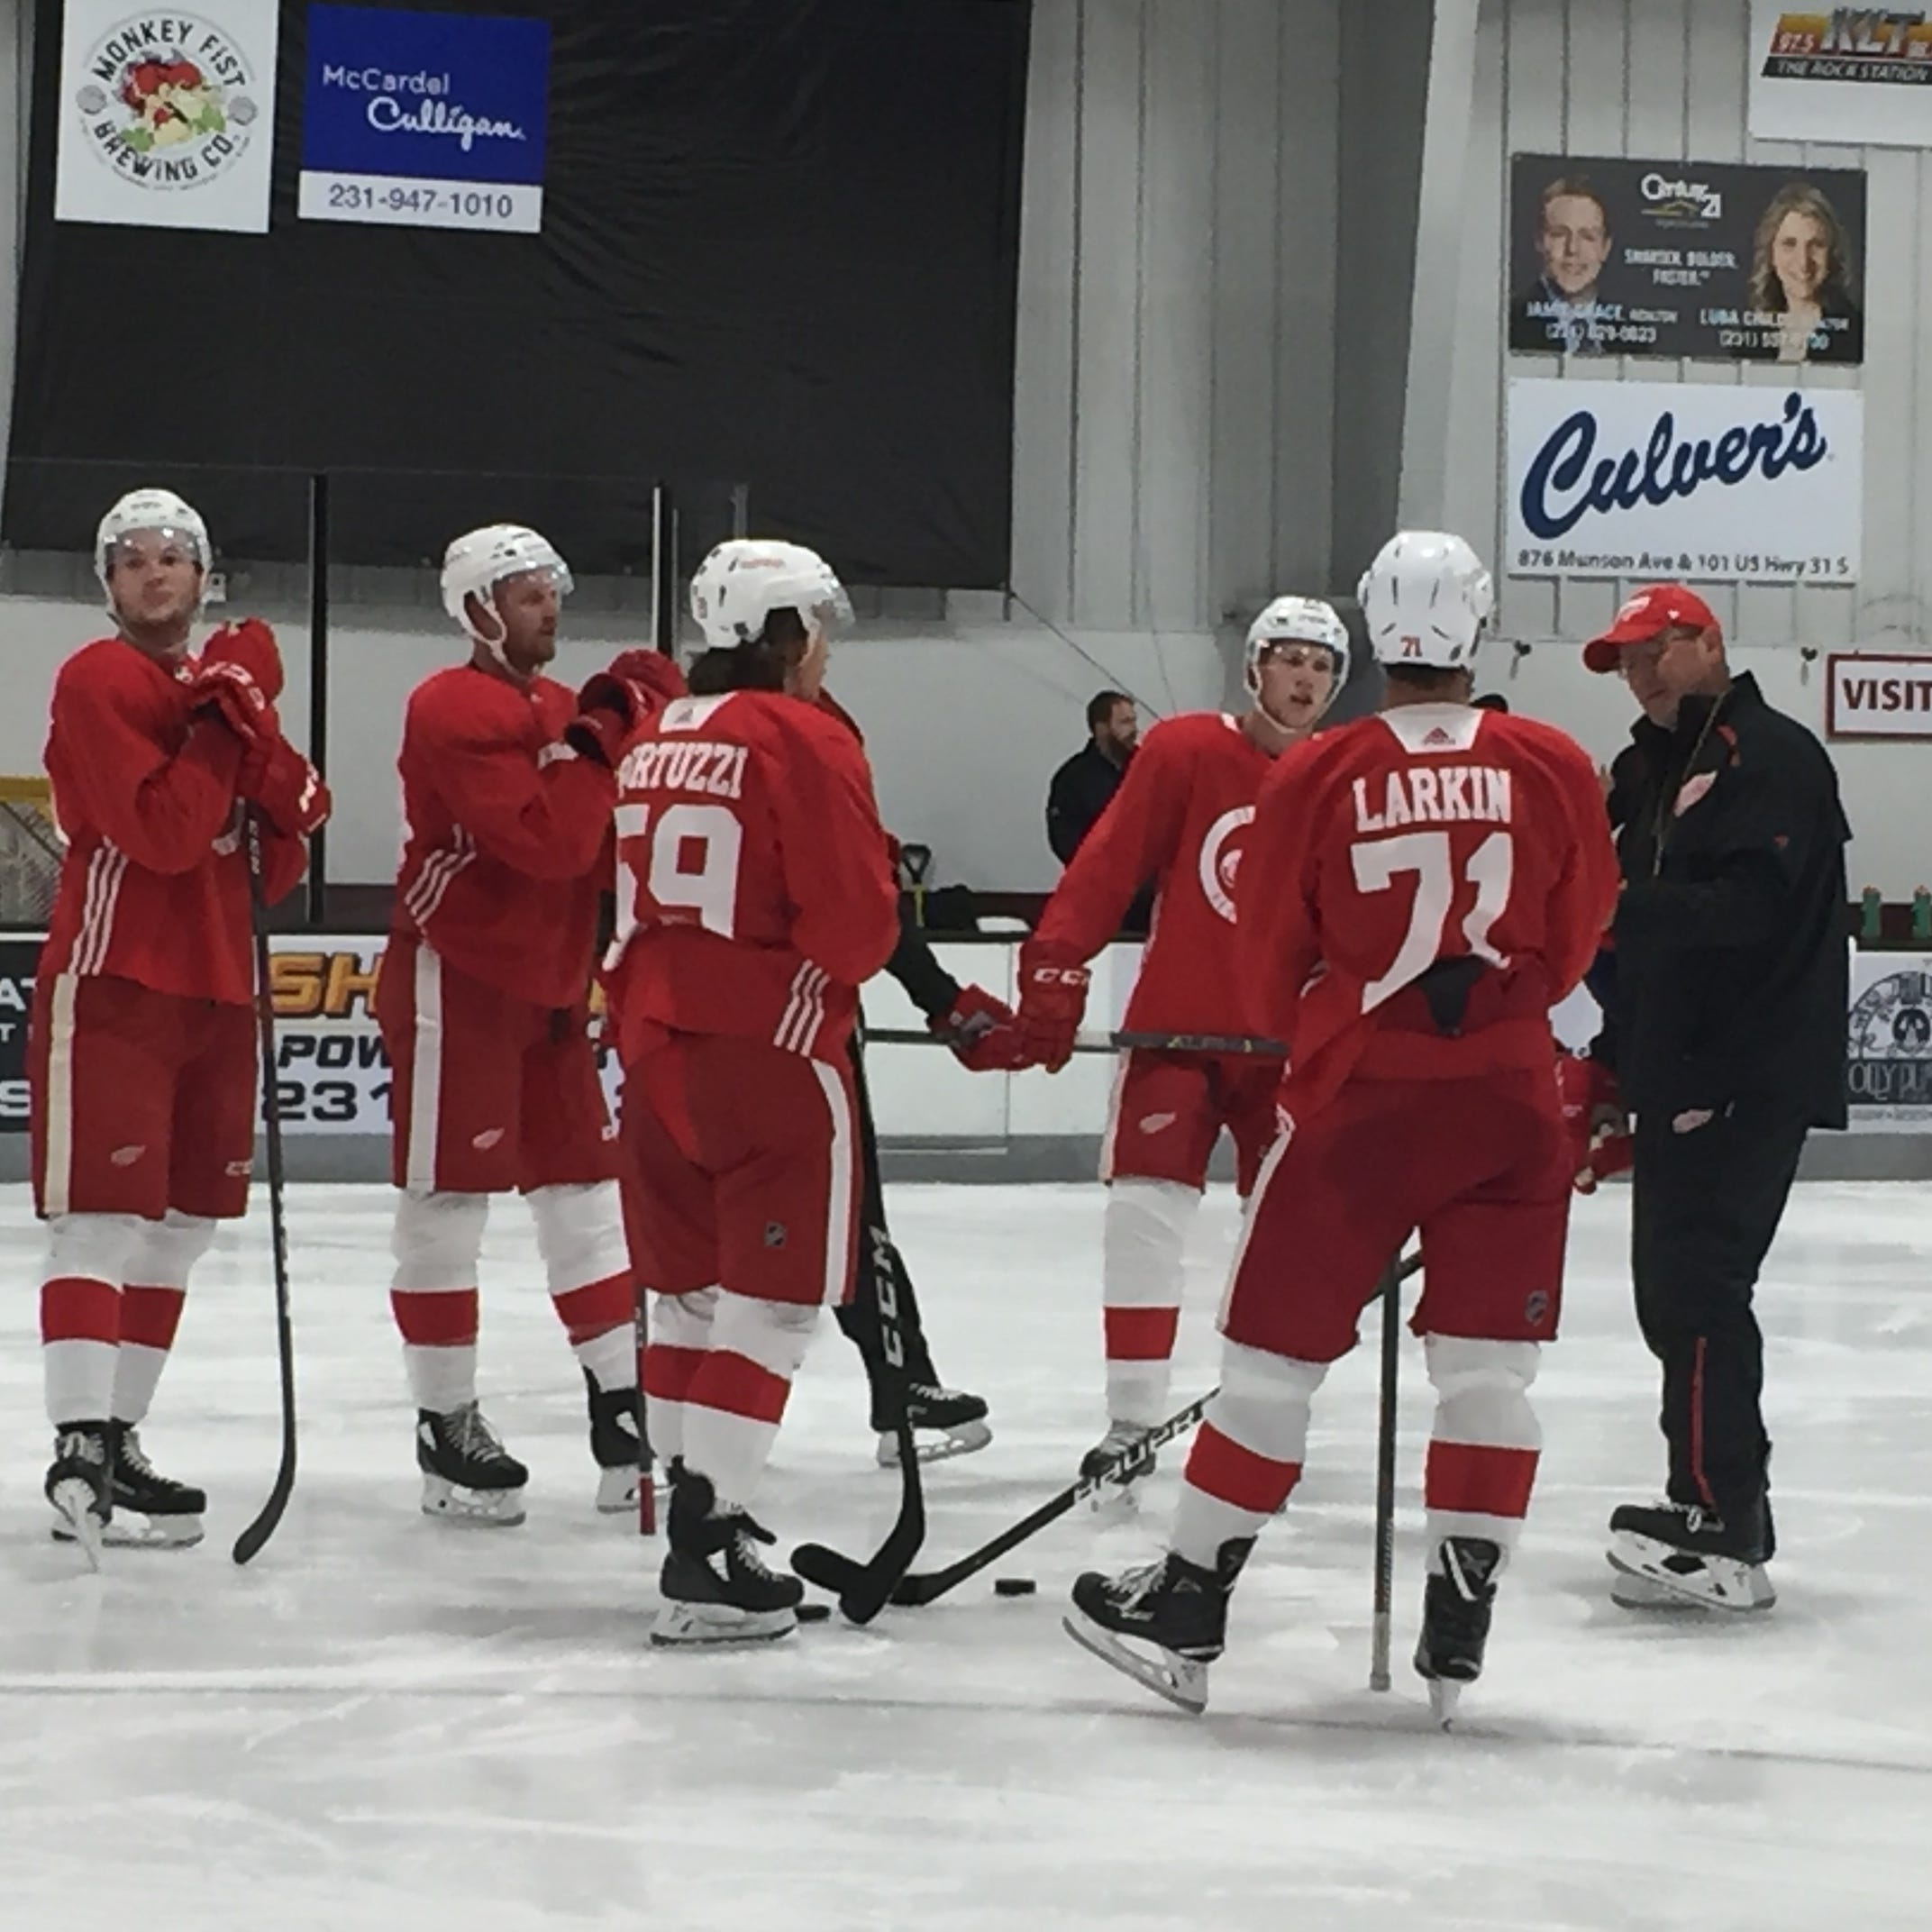 Detroit Red Wings have jobs up for grabs as exhibition season begins